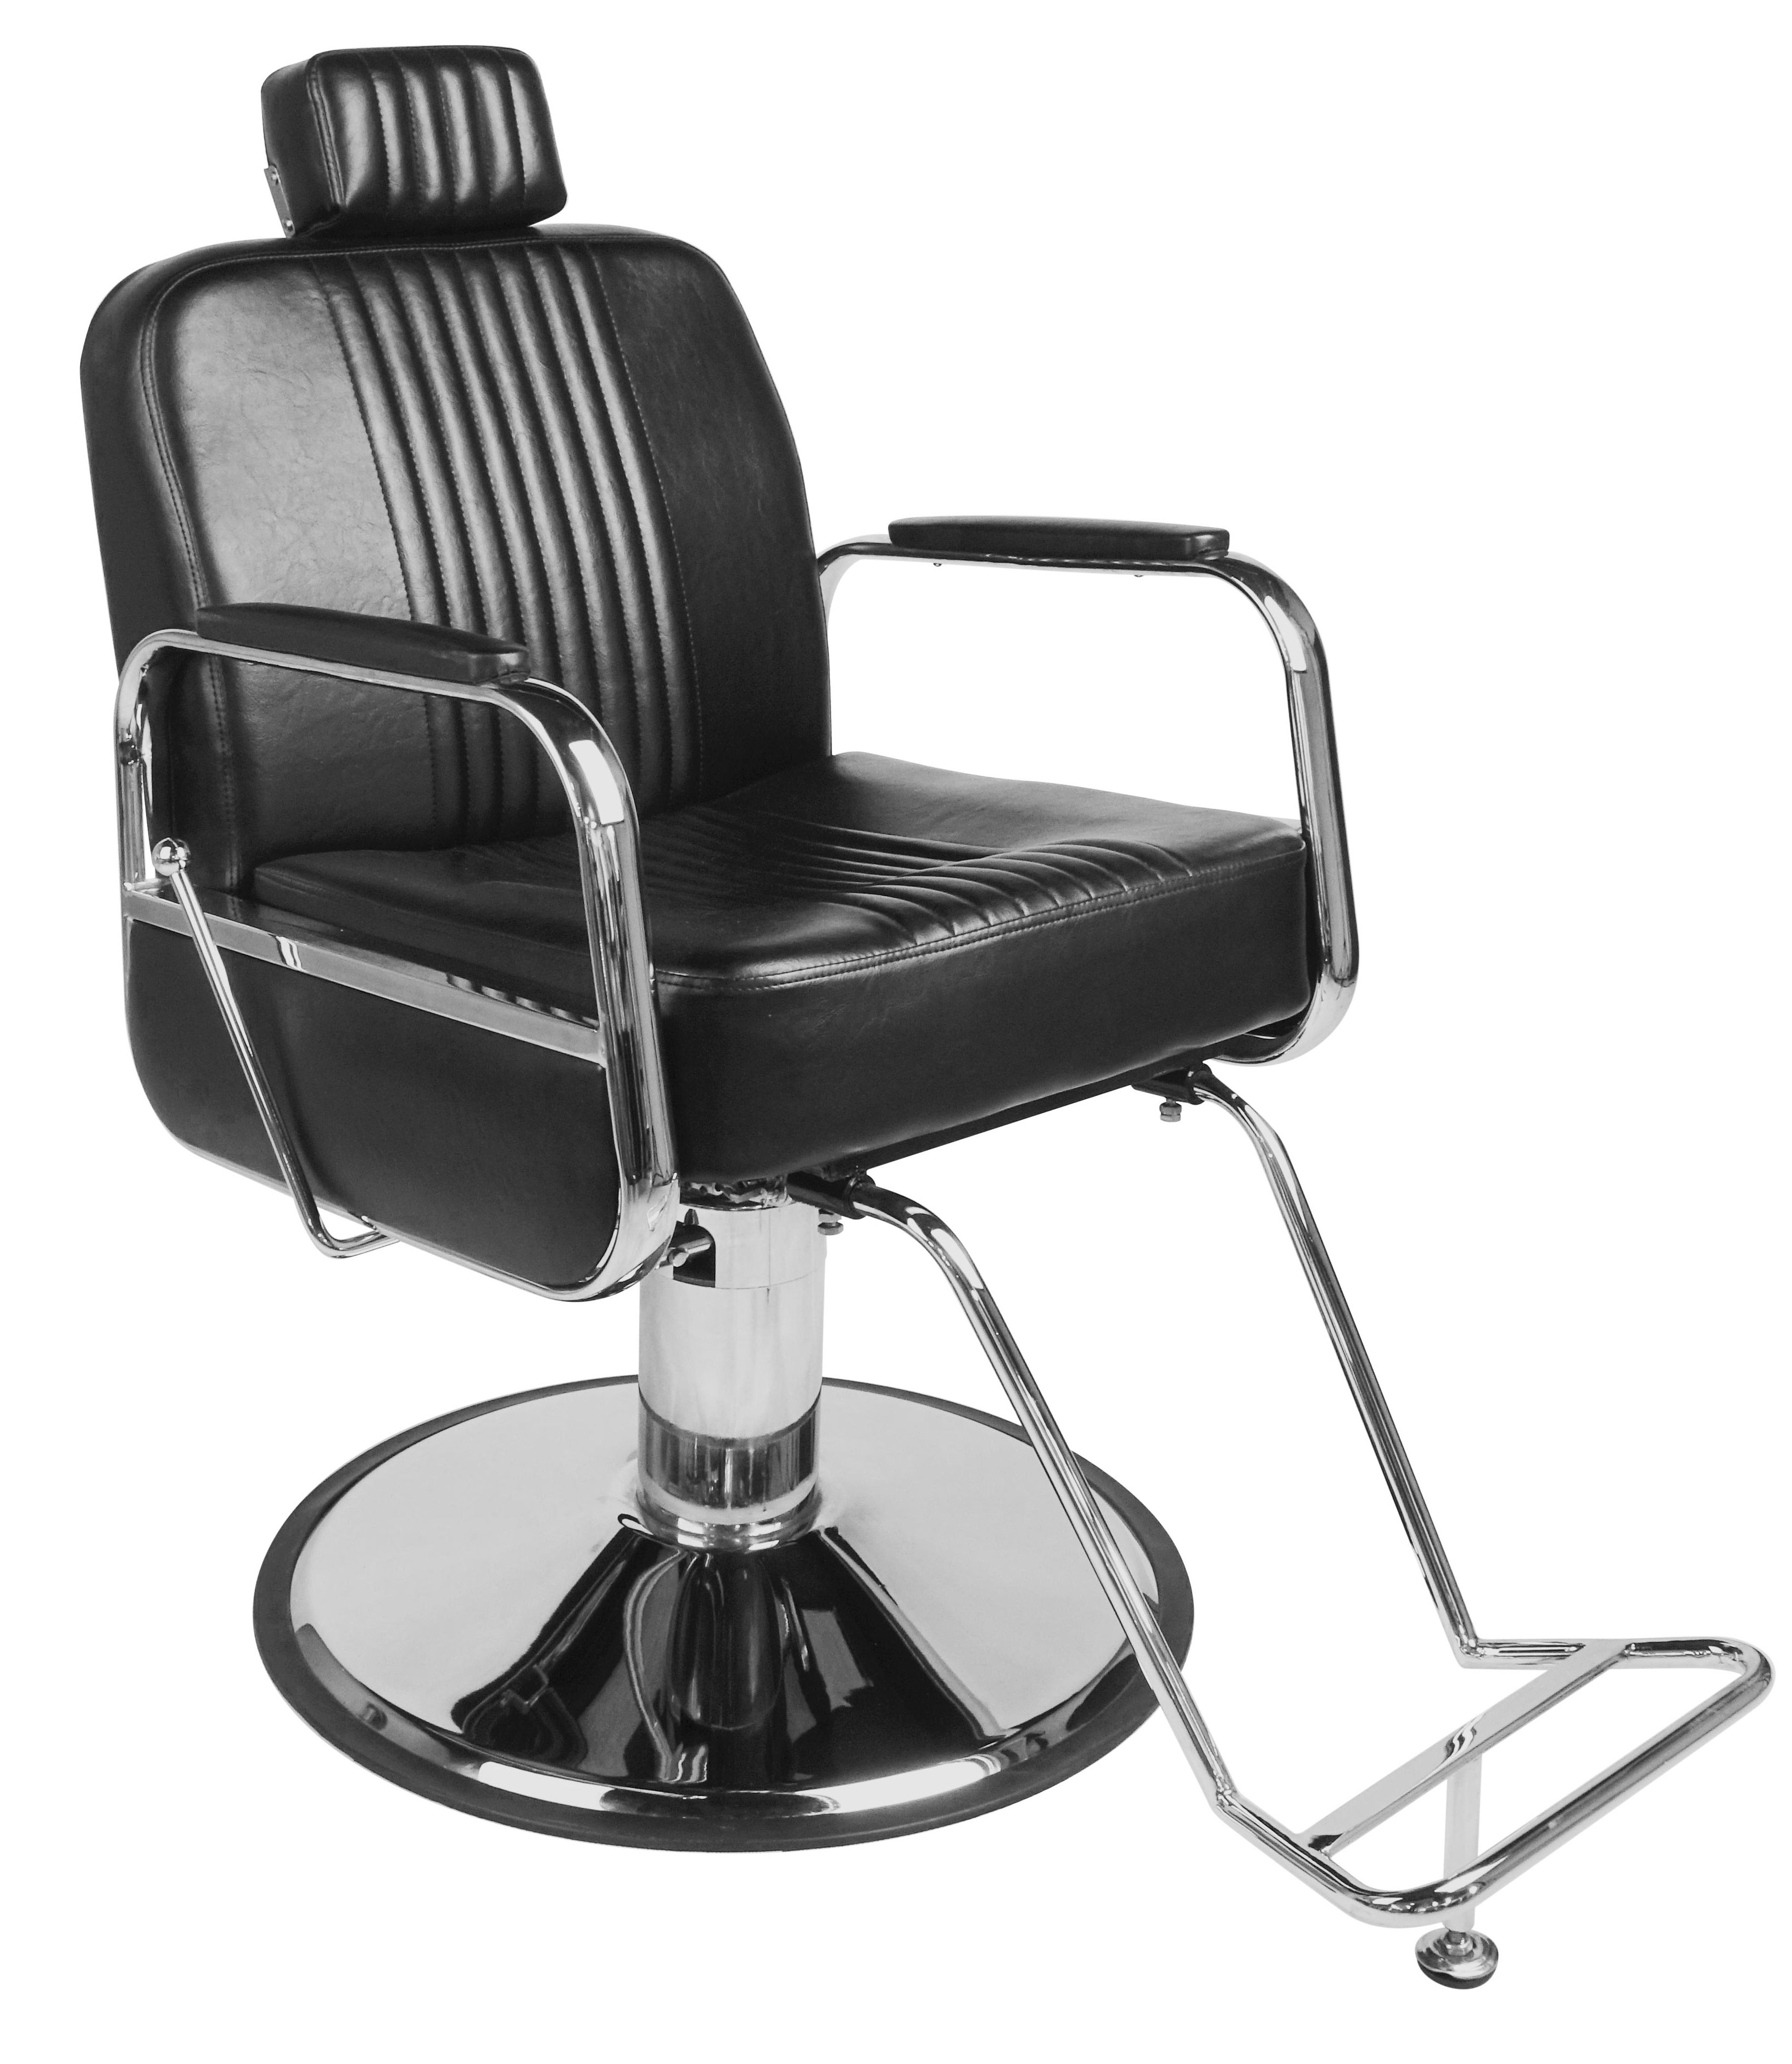 revolving chair features bedroom and table hairdressing salon furniture hair beauty